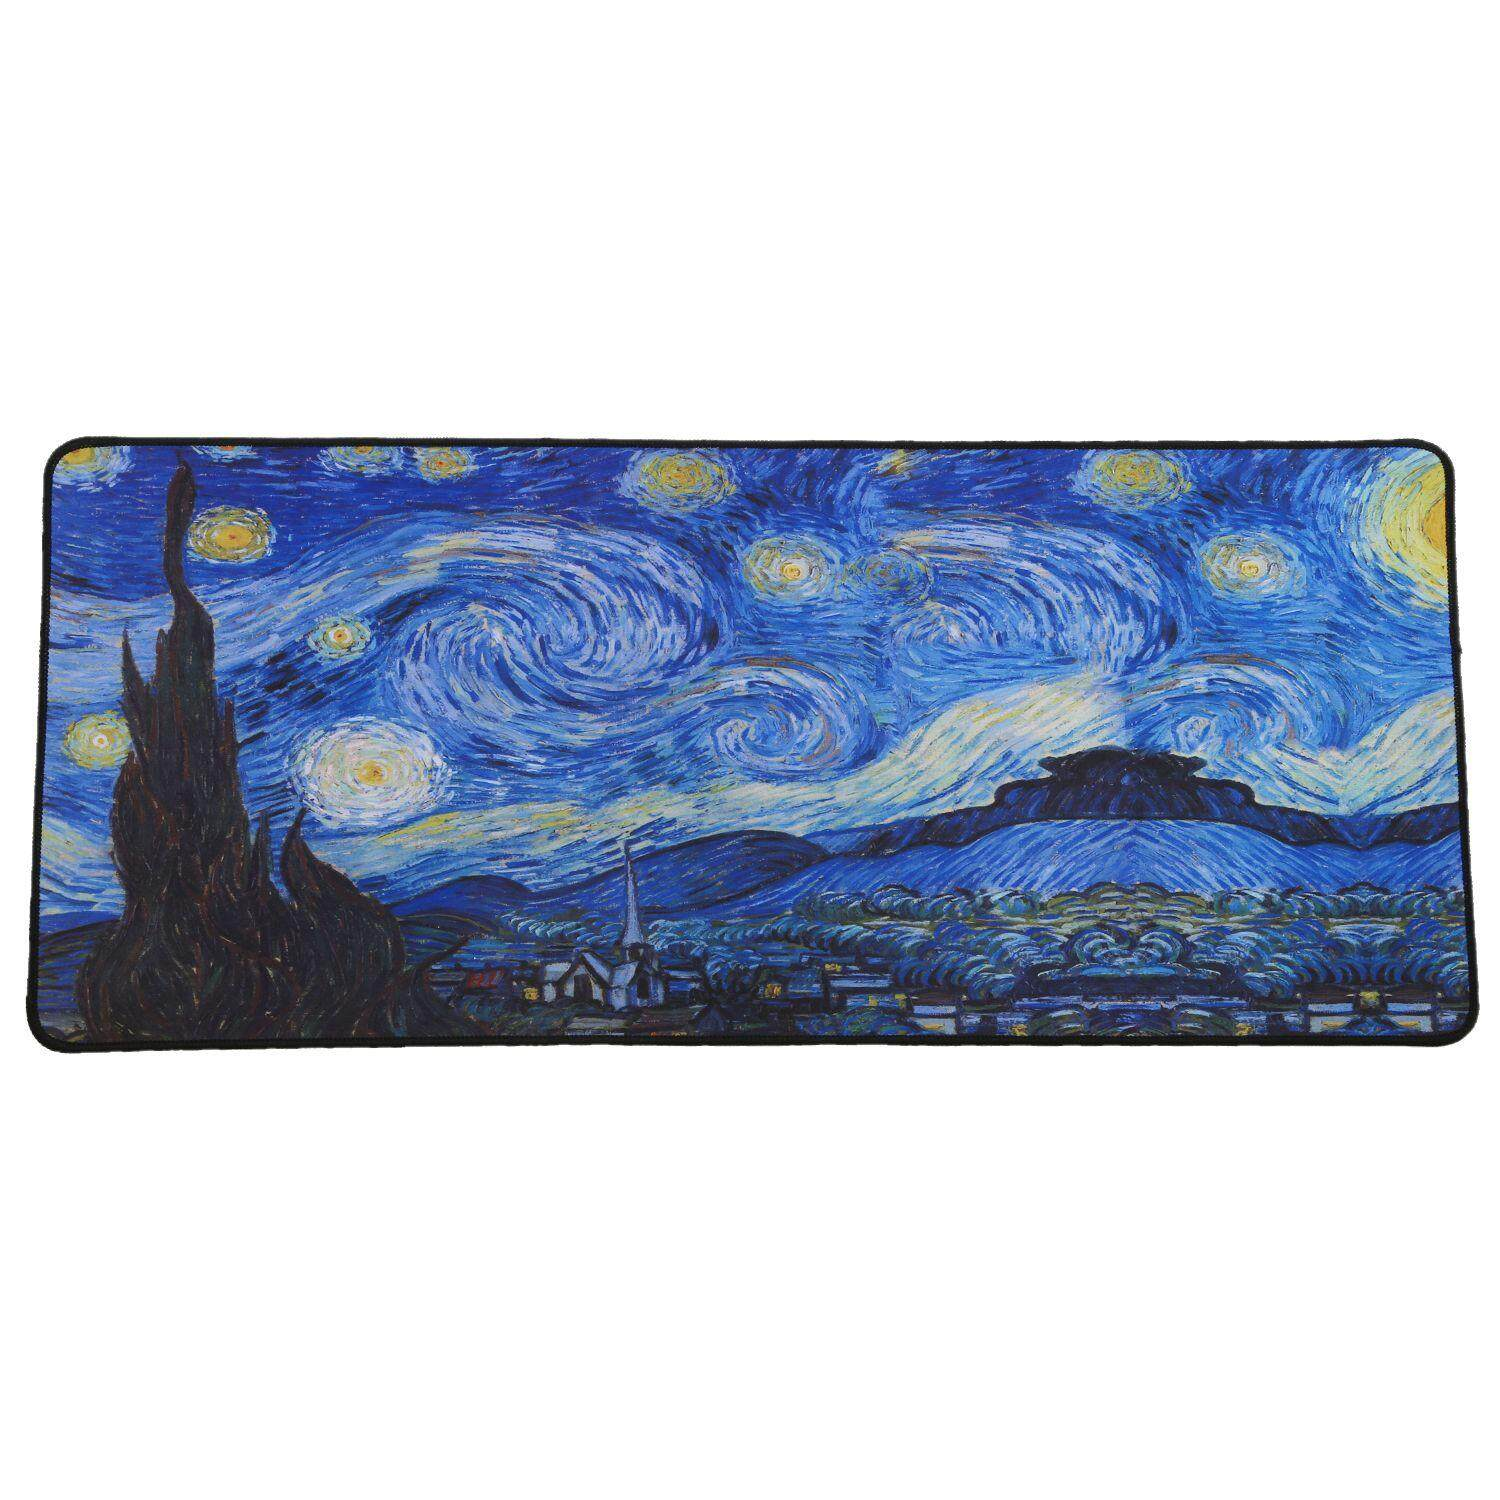 Gaming Mouse Pad Locking Edge Large Mouse Mat PC Computer Laptop Mousepad for Apple MackBook CS GO Dota2 LOL:Starry sky - intl